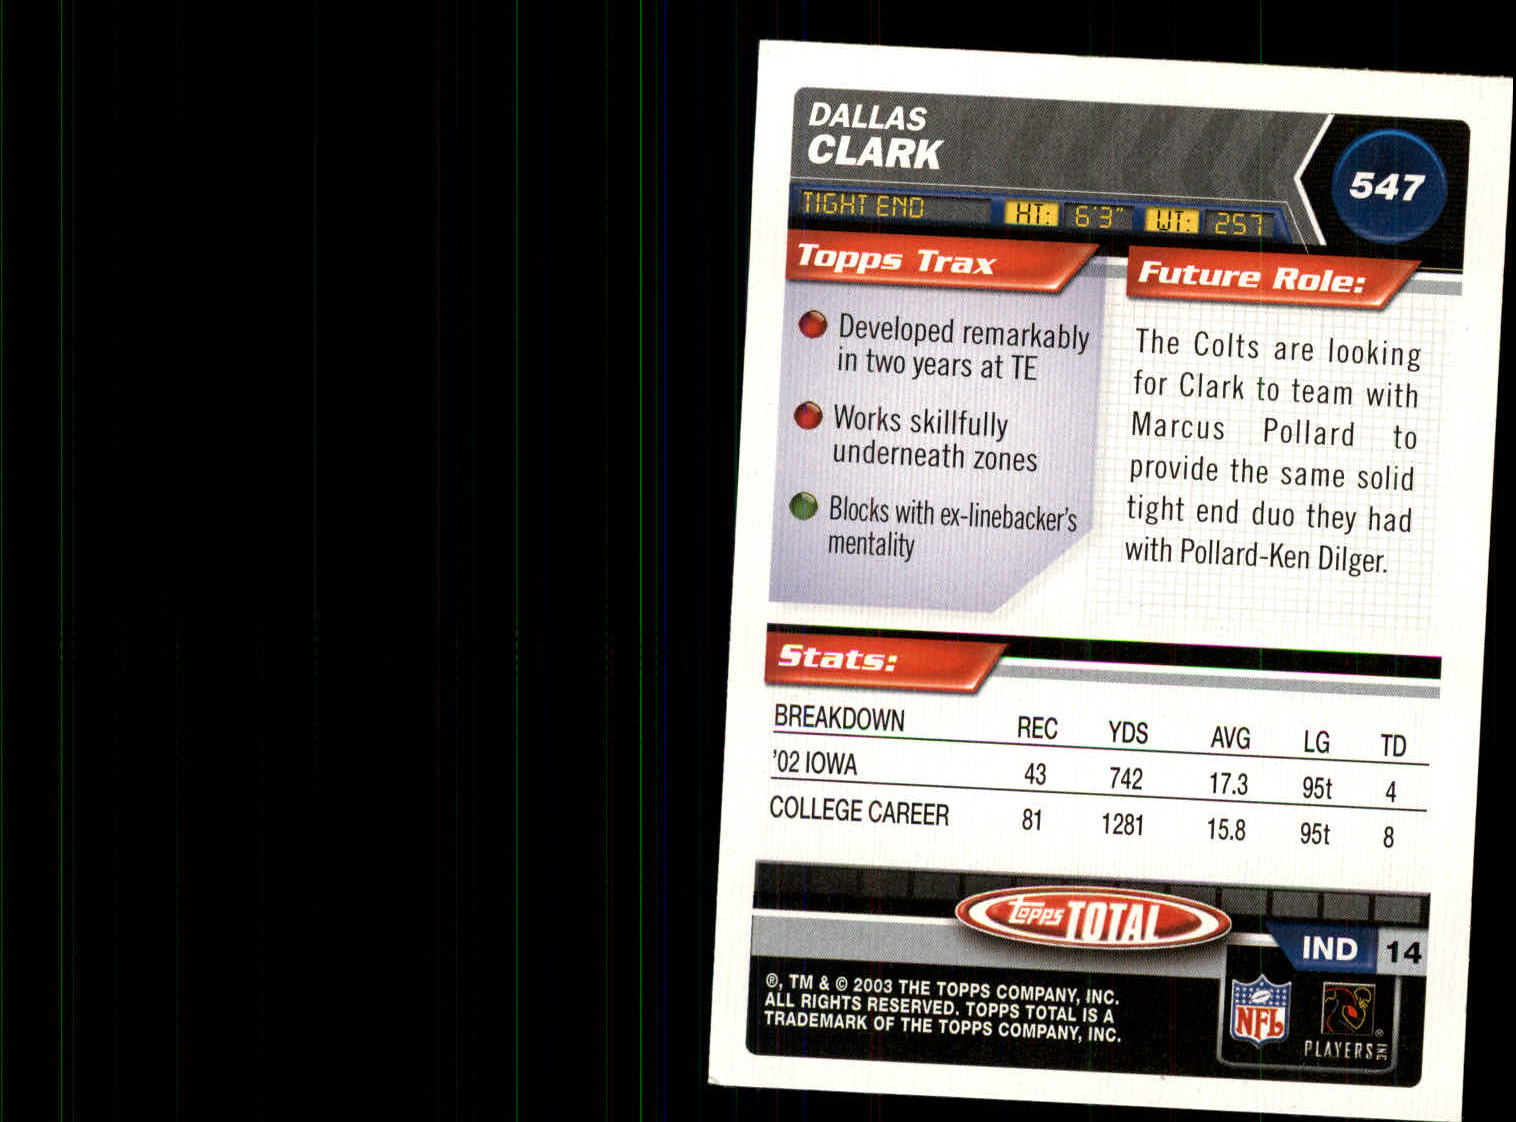 2003 Topps Total Silver #547 Dallas Clark back image